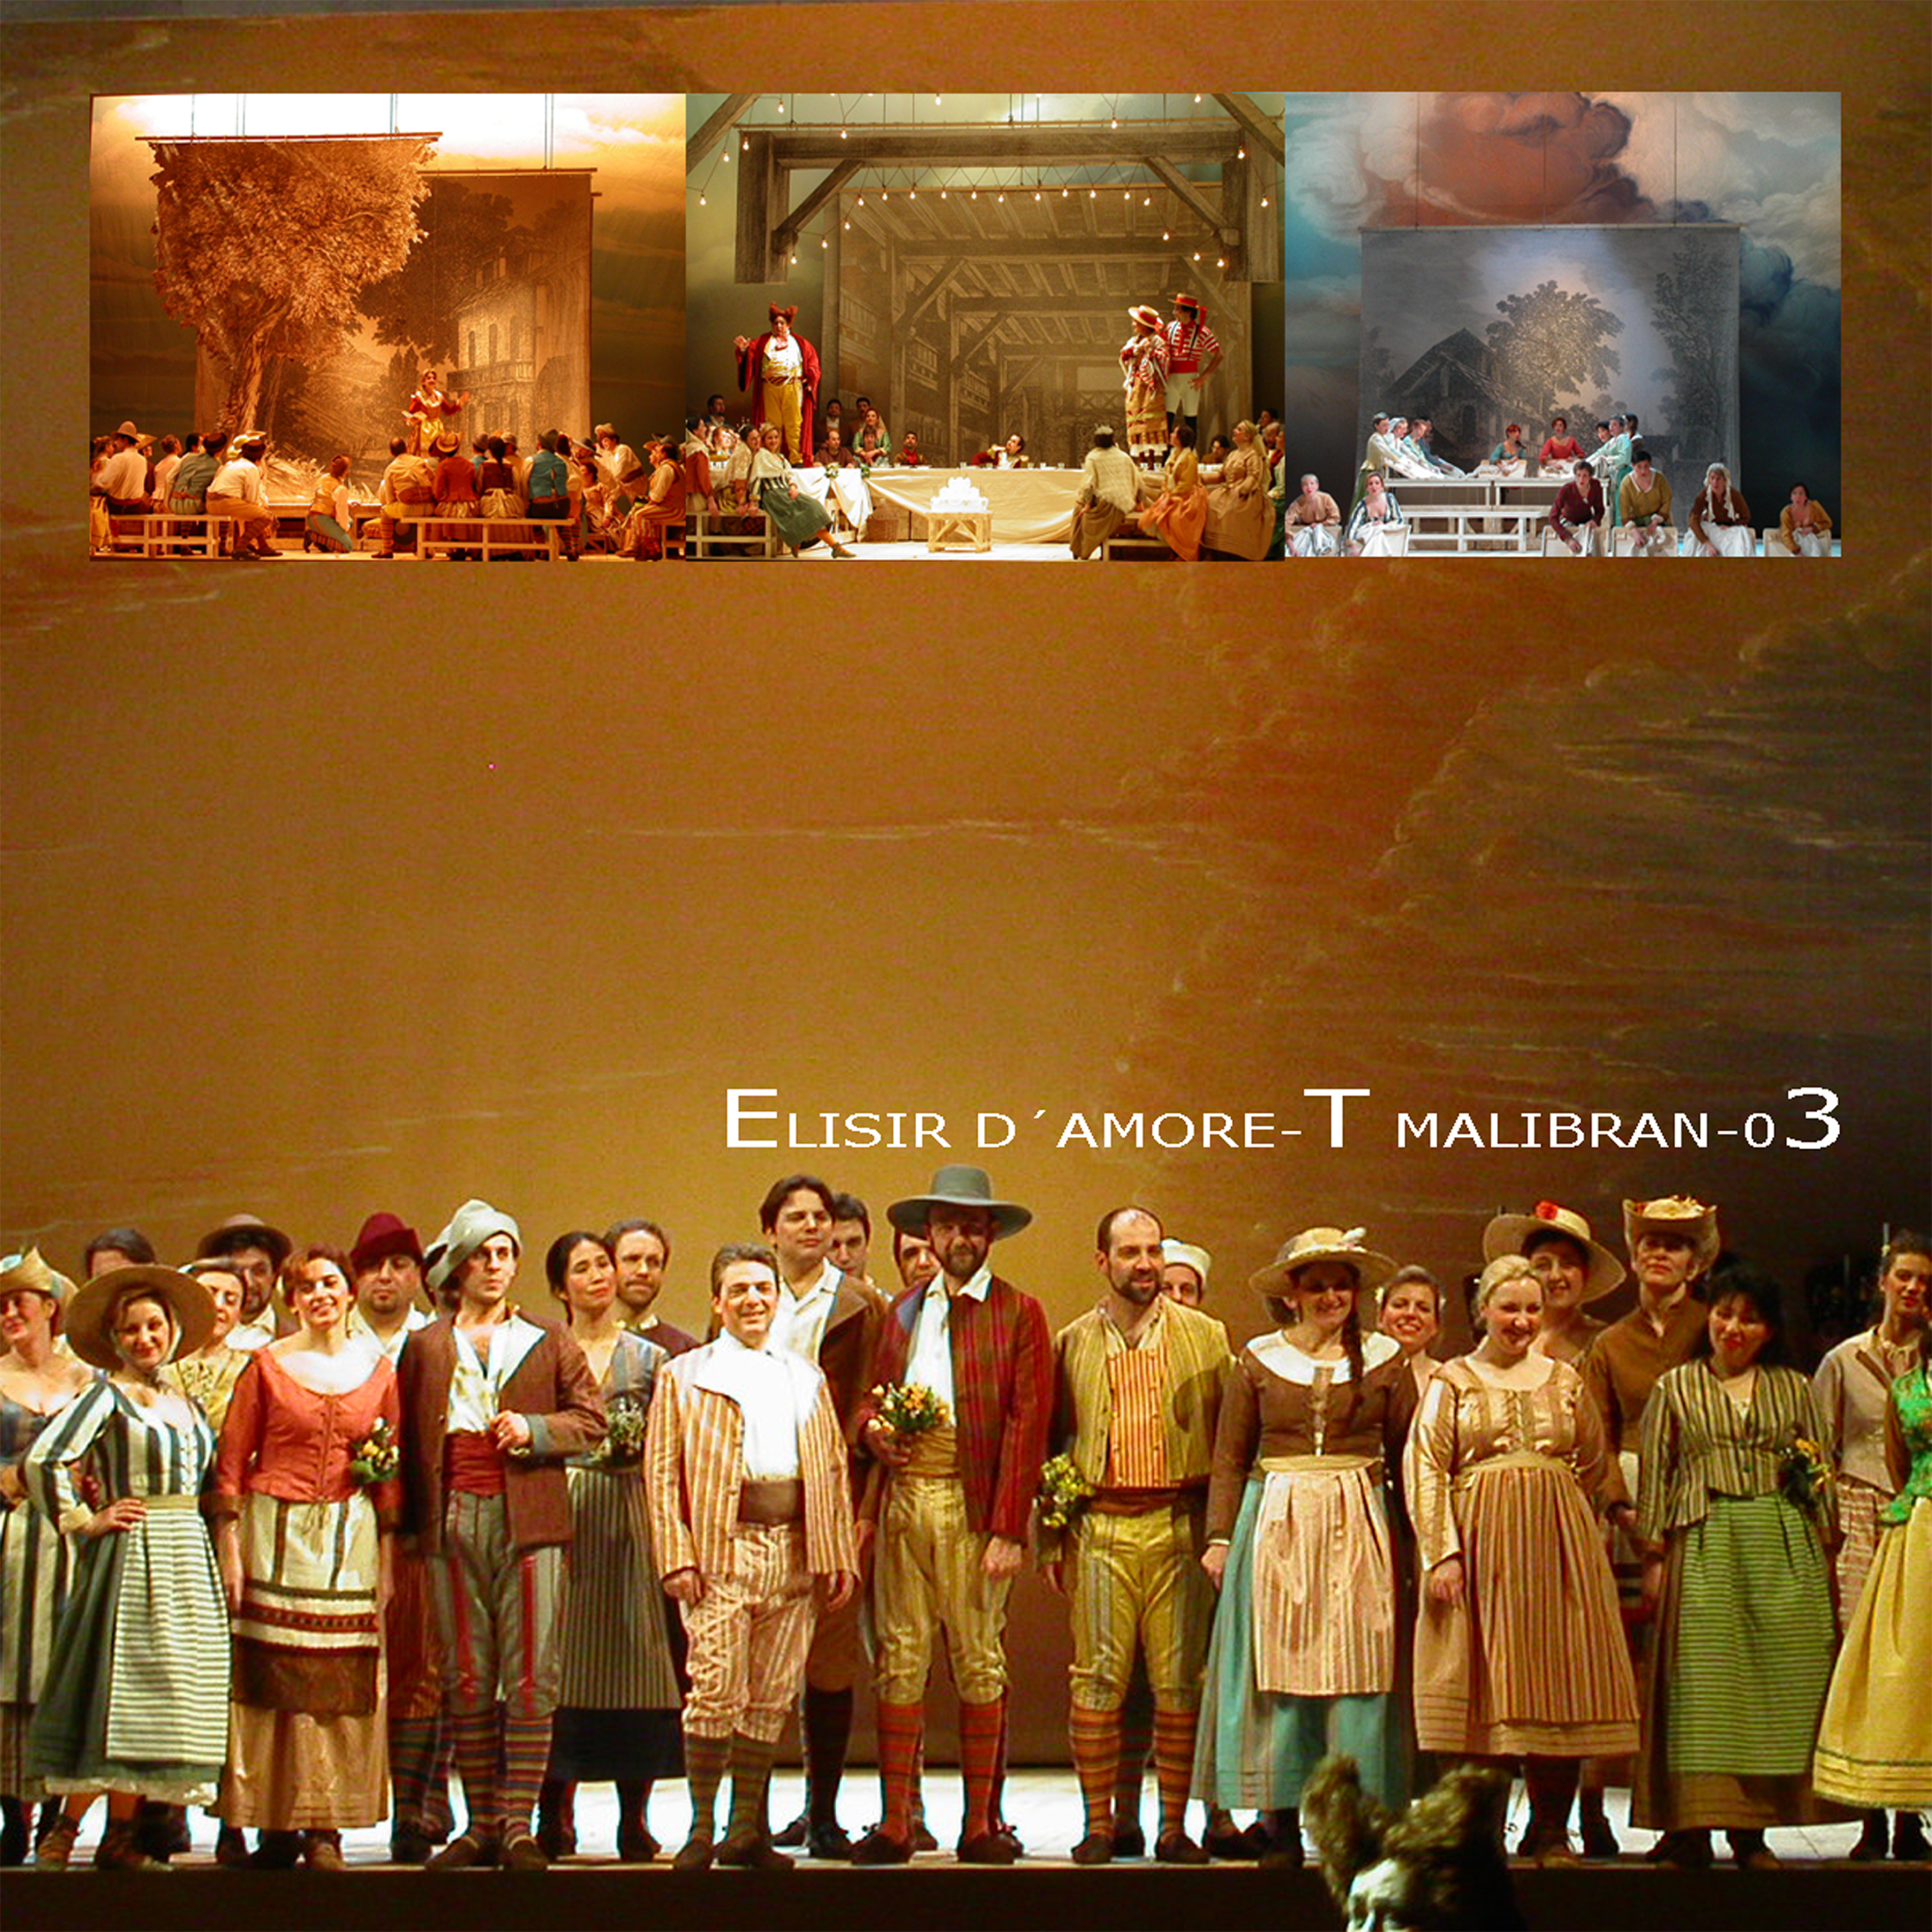 elisir d'amore - DONIZZETTIset and costume, assistant of G. M. FercioniDirected by G. Morassi   Theatre Malibran and Theatre La Fenice, Venezia ItalyVenezia,   still on stage since 2003